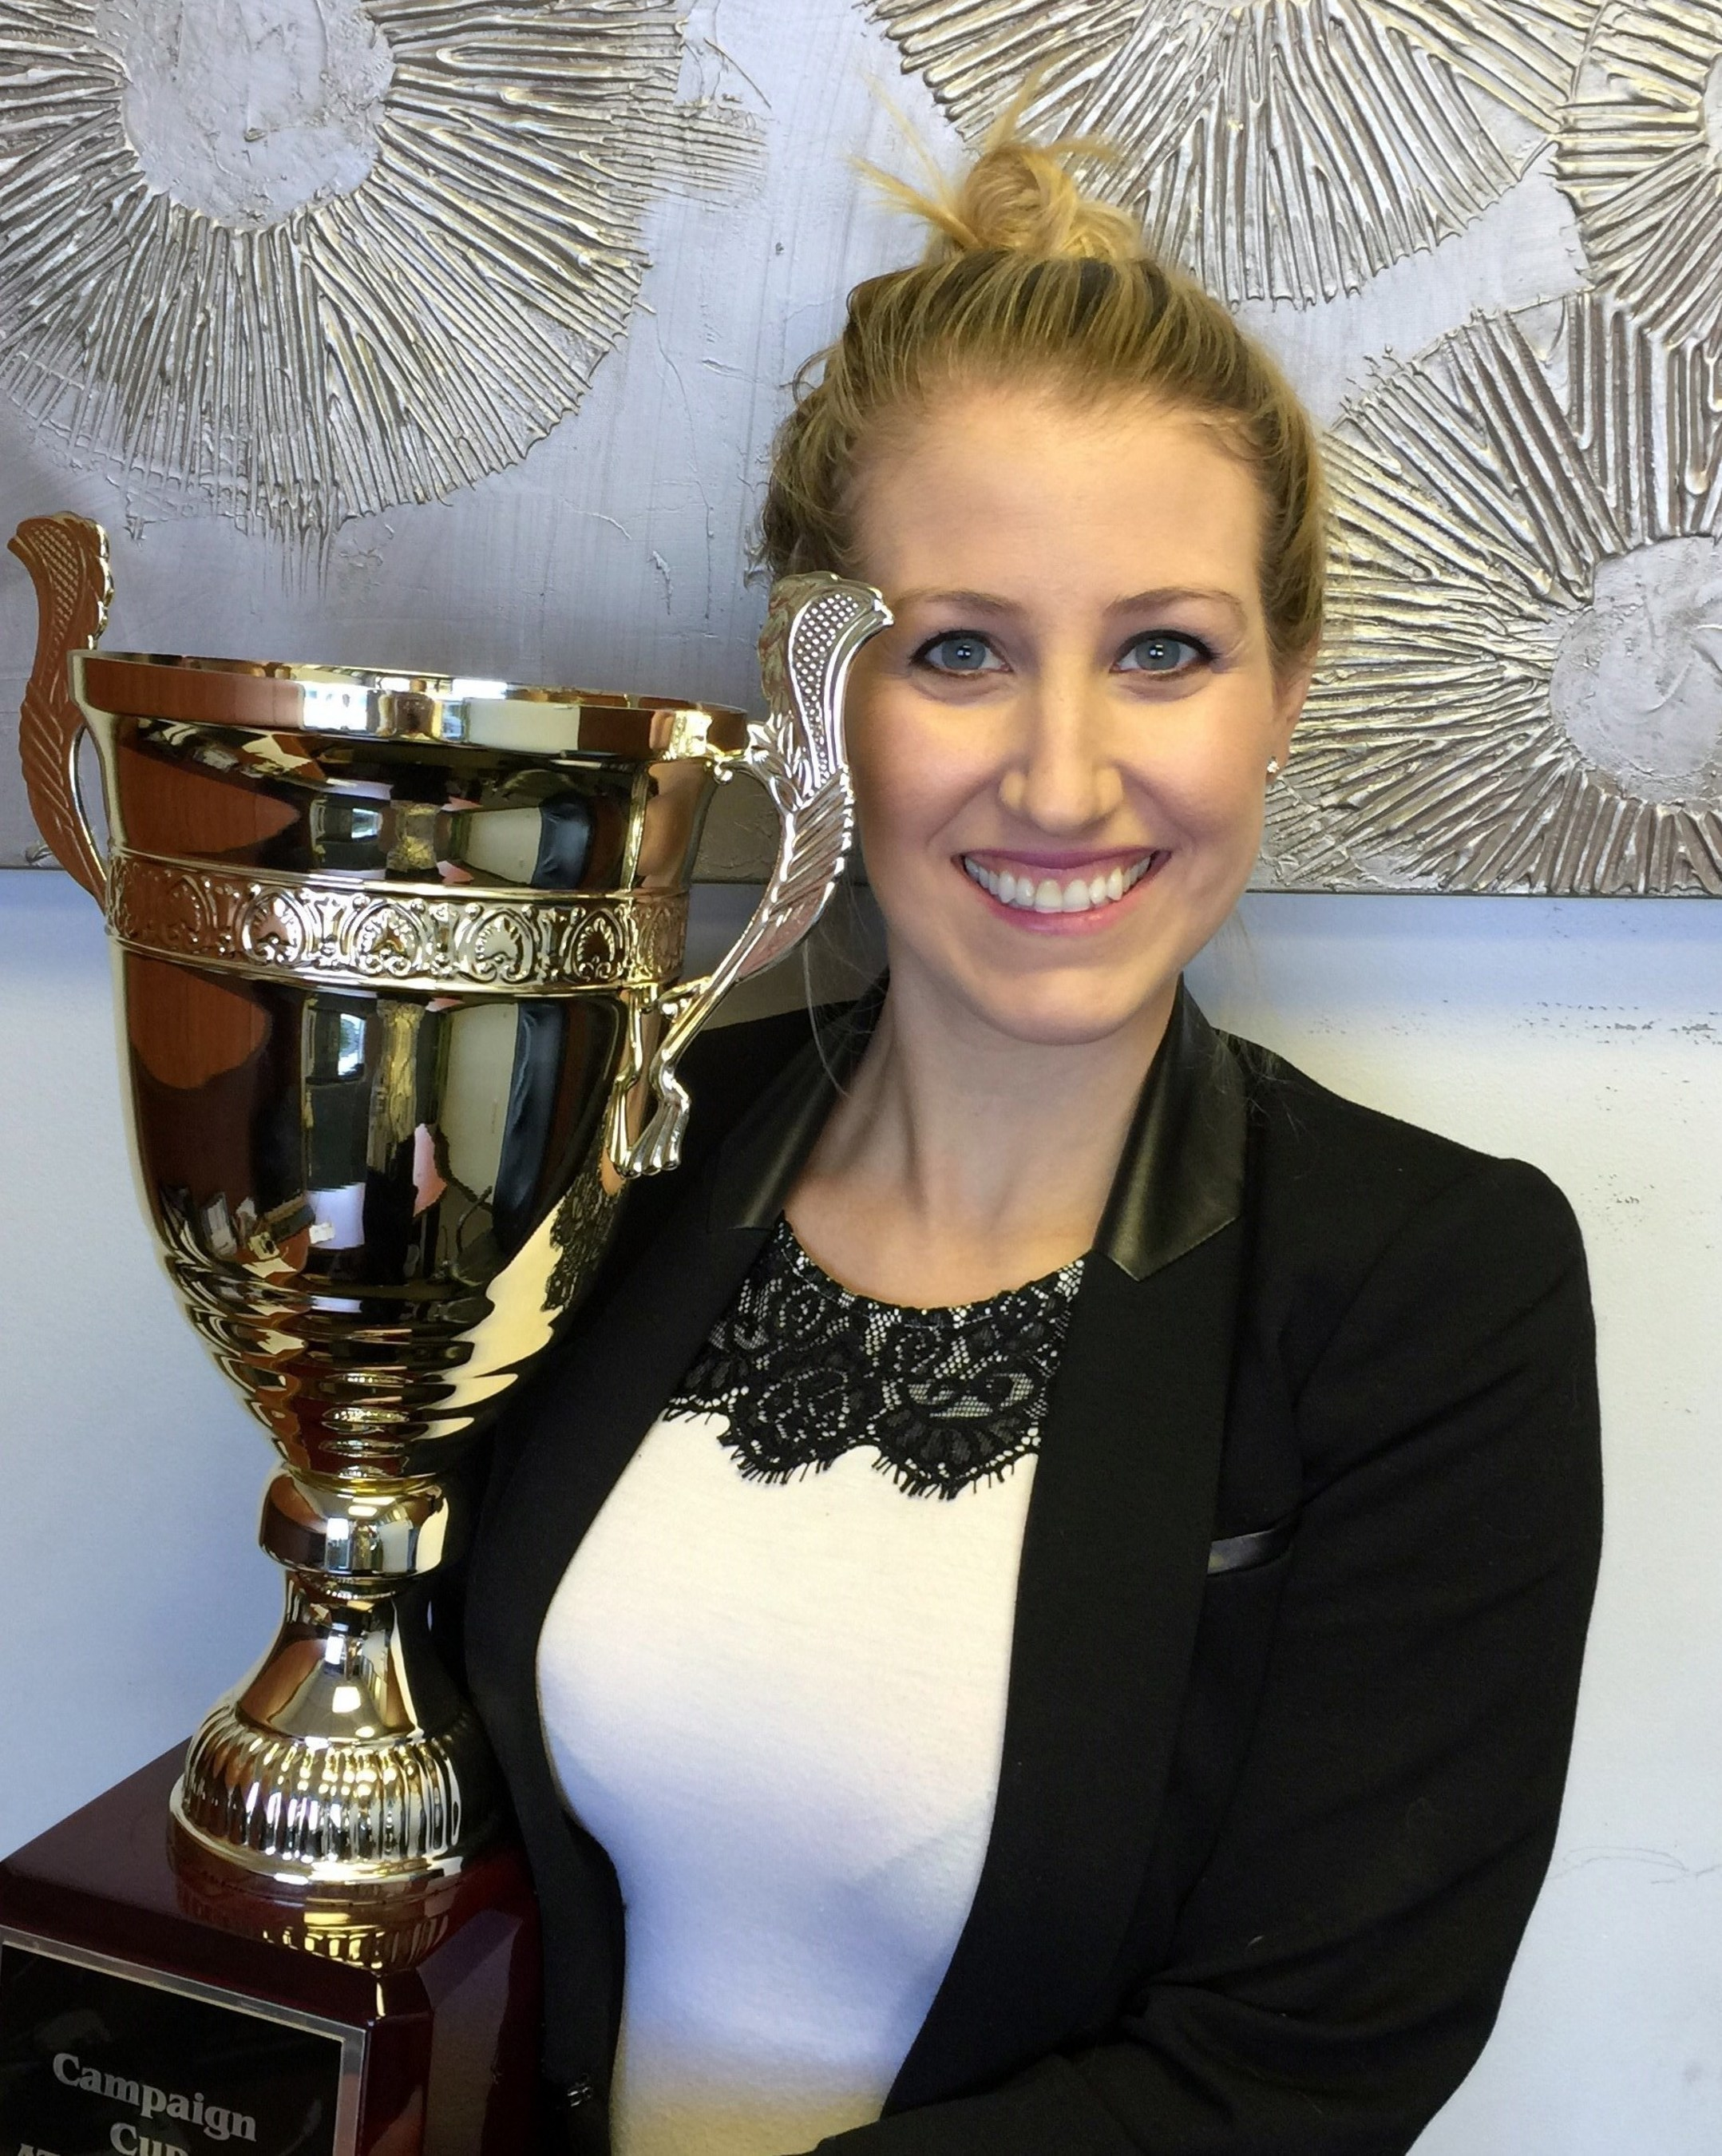 South, Inc. Wins 'Campaign Cup' Recognition